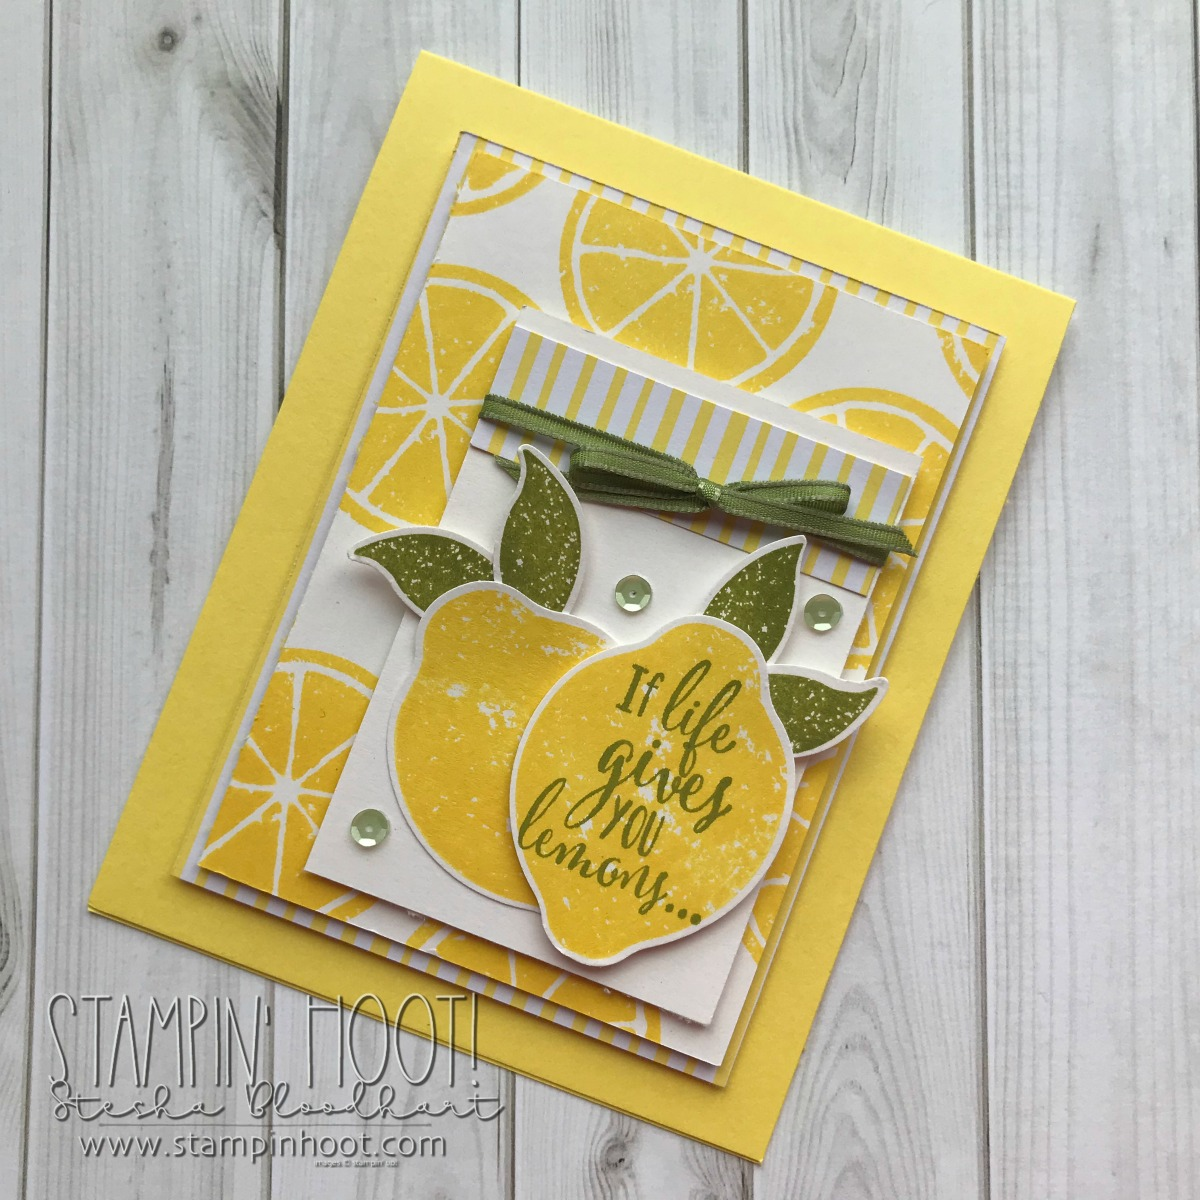 Lemon Zest Stamp Set & Lemon Builder Punch by Stampin' Up! for #tgifc165 inspiration challenge. Card by Stesha Bloodhart, Stampin' Hoot! #steshabloodhart #stampinhoot